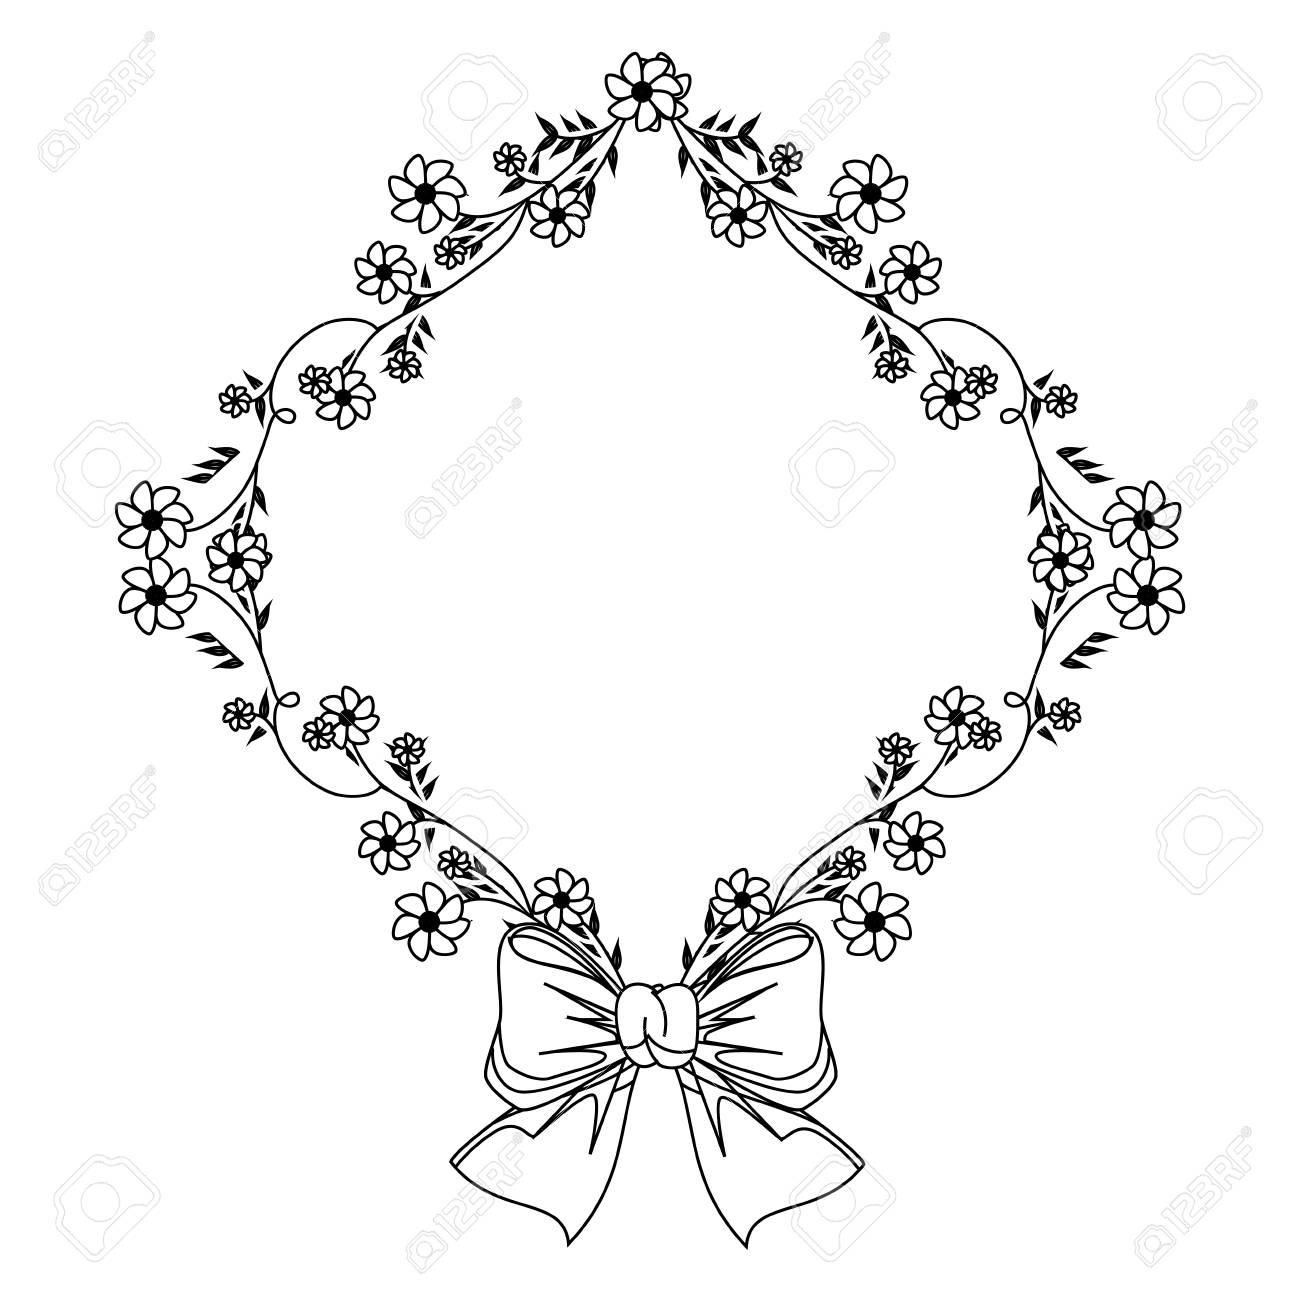 1300x1300 Monochrome Contour With Diamond Frame With Creepers And Flowers